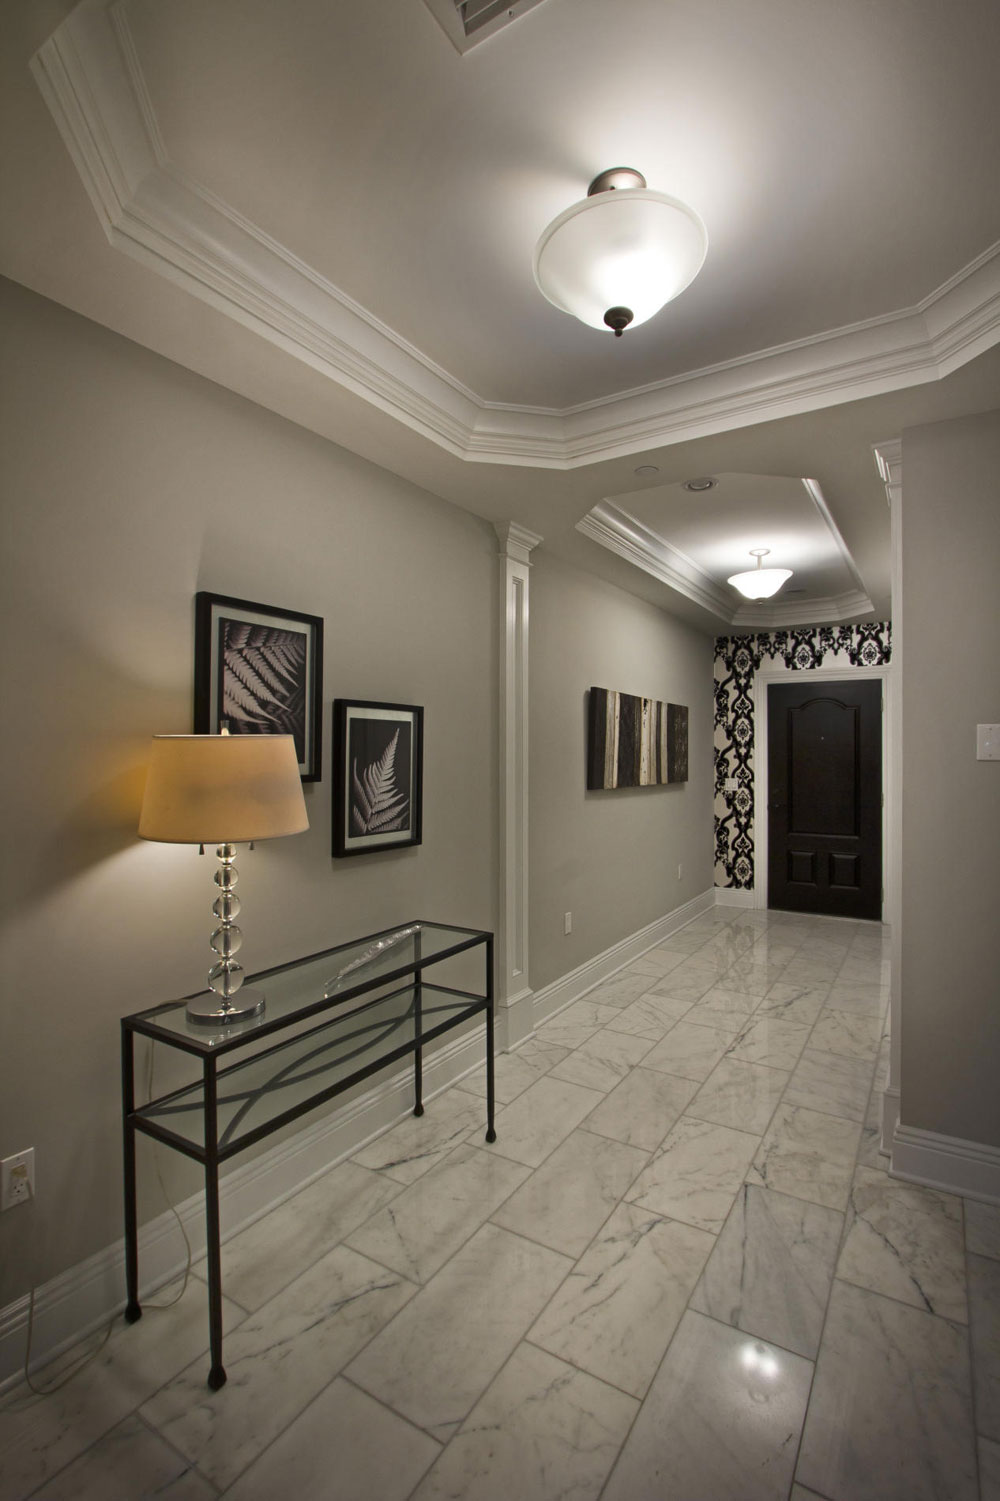 Warm Your Day With These Hallway Decorating Ideas Warm Your Day With These Hallway Decorating Ideas